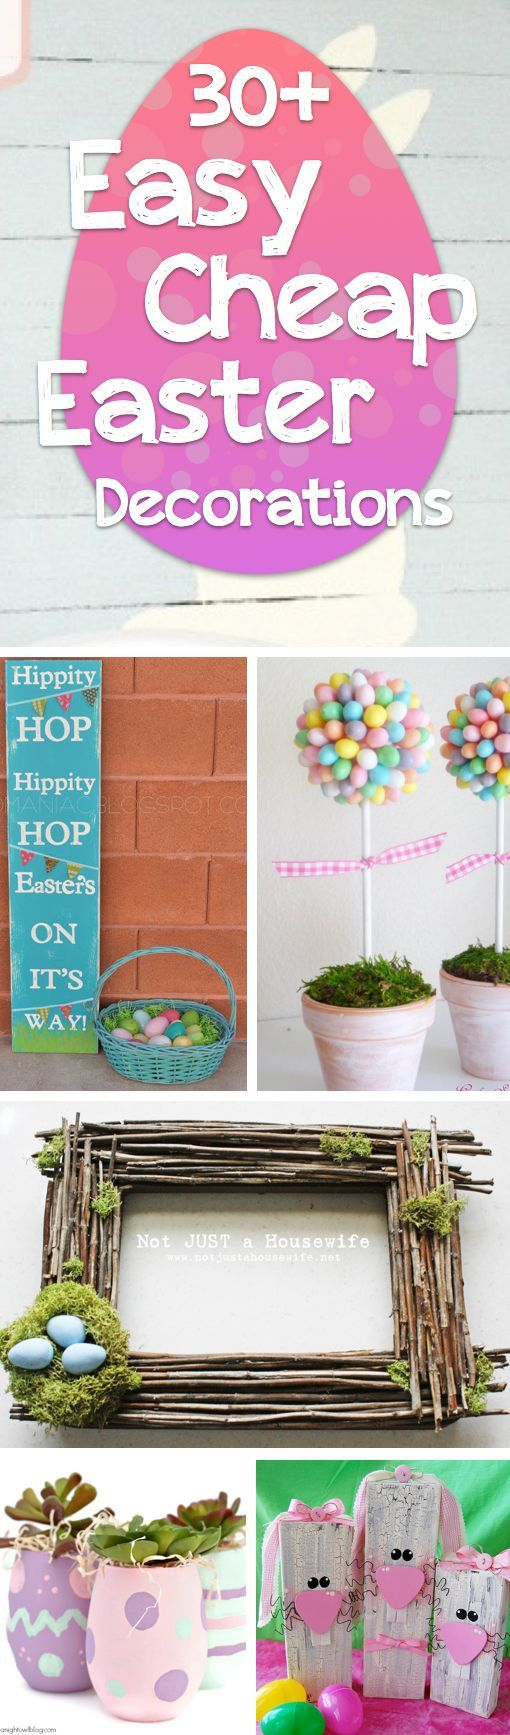 17 beste idee n over diy easter decorations op pinterest pasen middelpunt pasen boom en - Ideeen decor ...